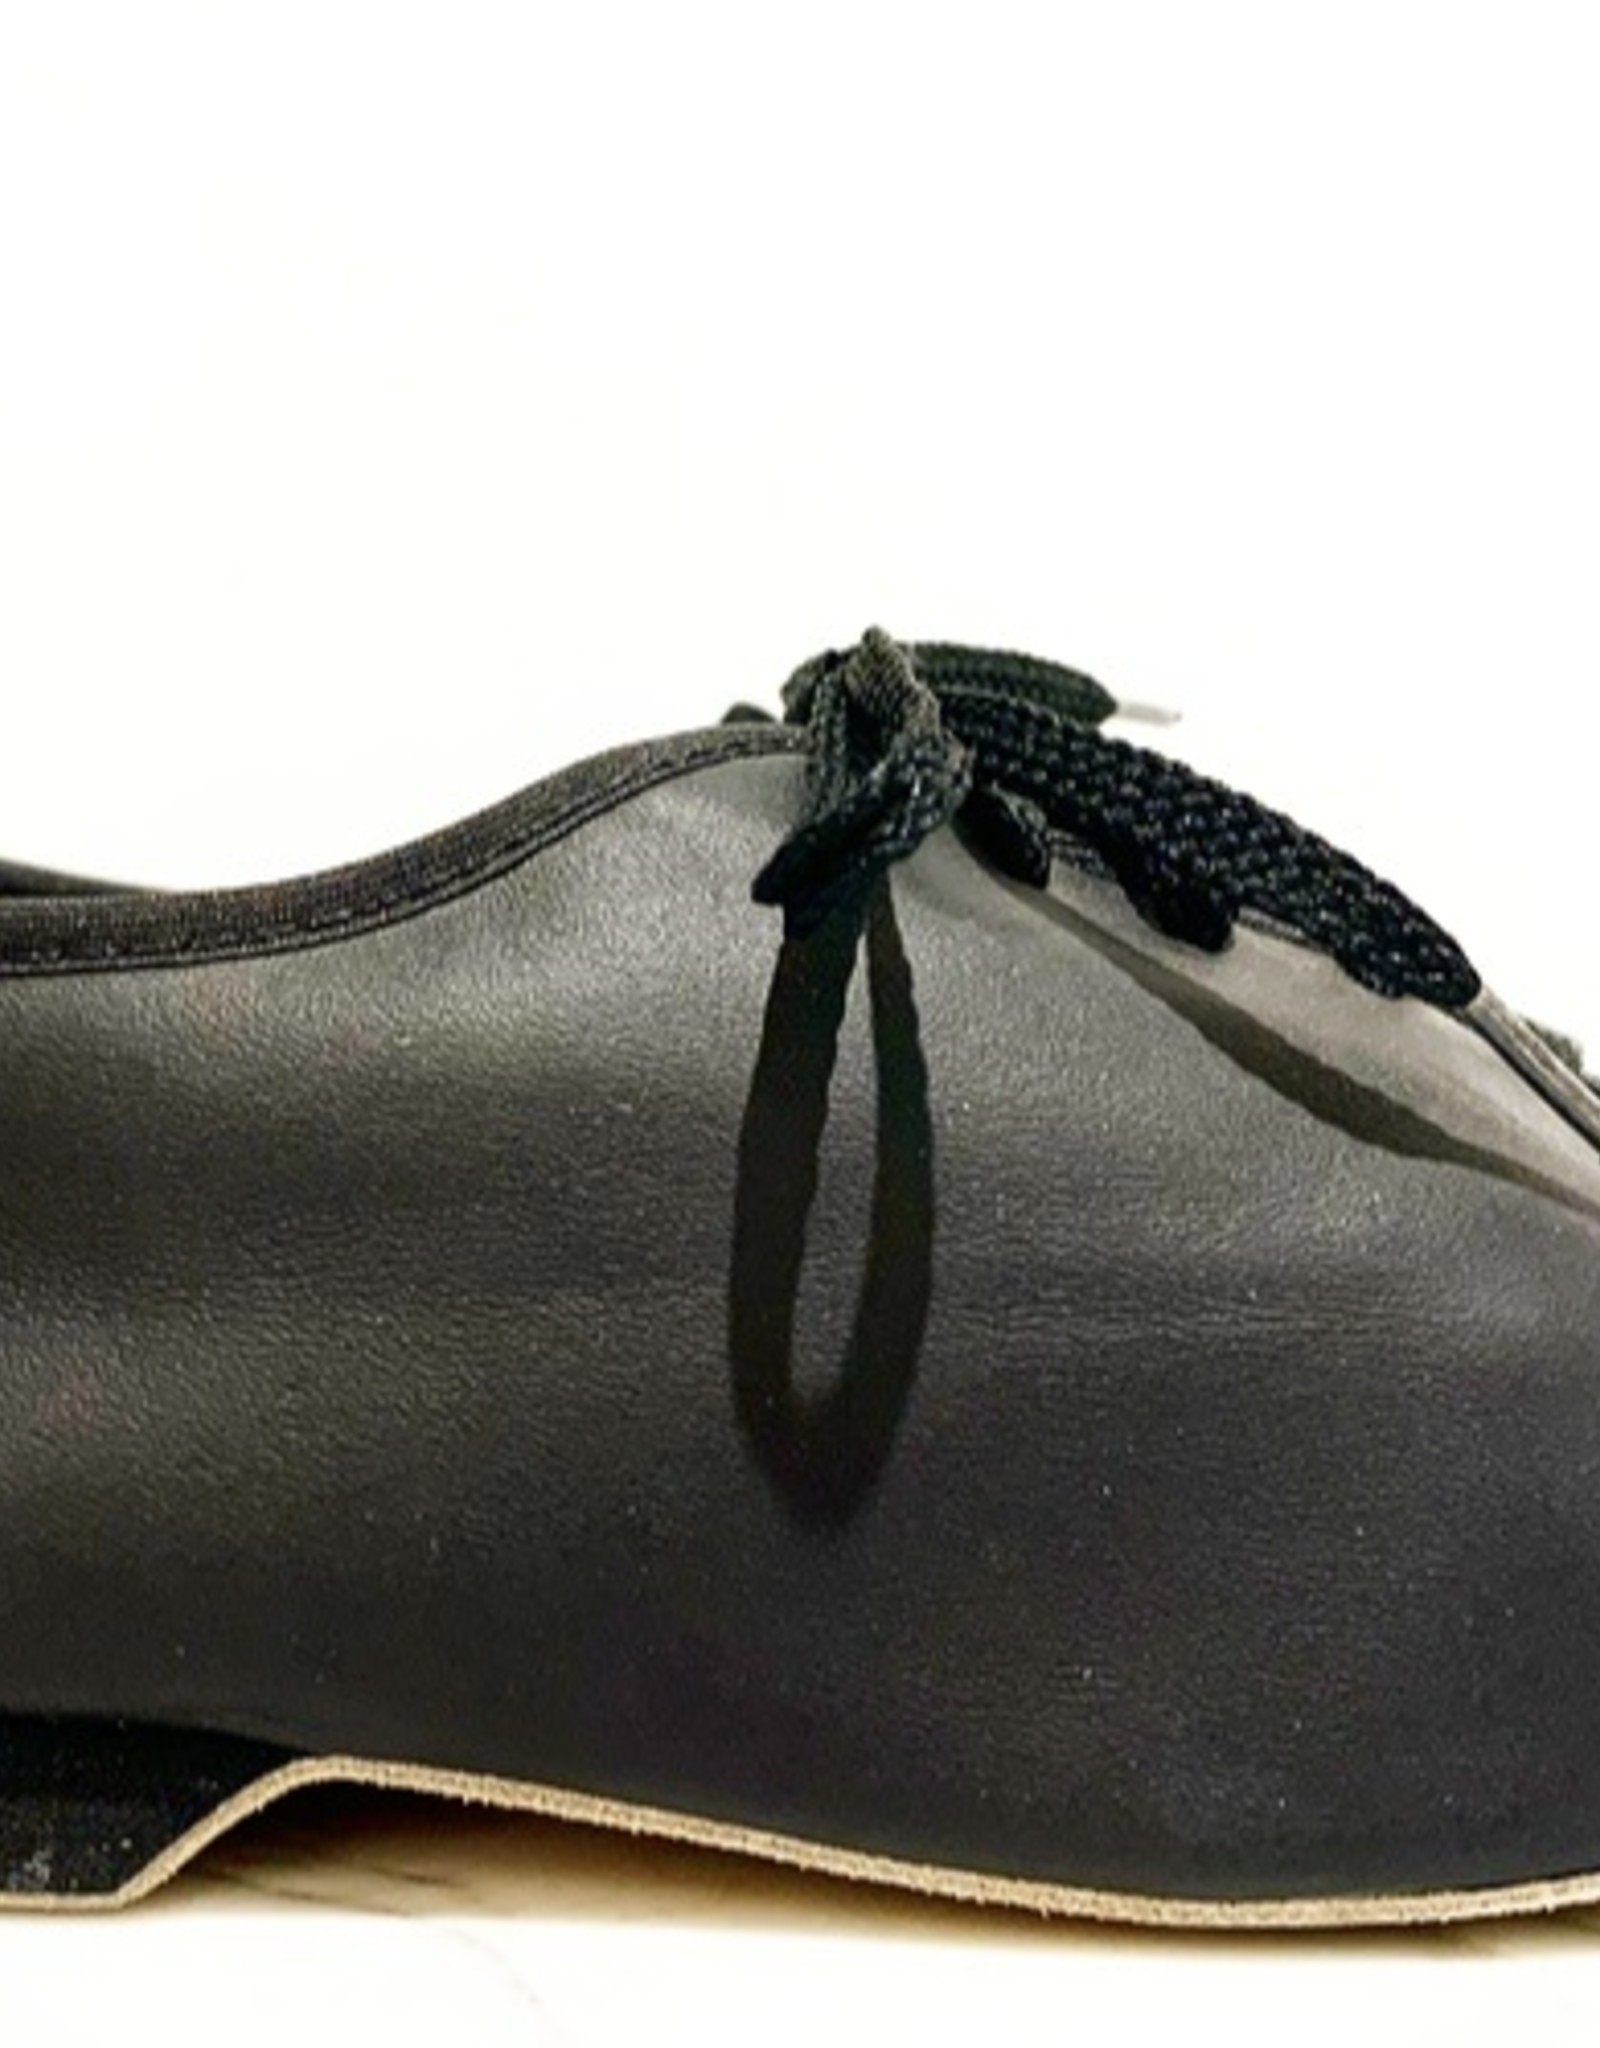 ANGELO LUZIO FULL SOLE LEATHER JAZZ  SHOES (365)